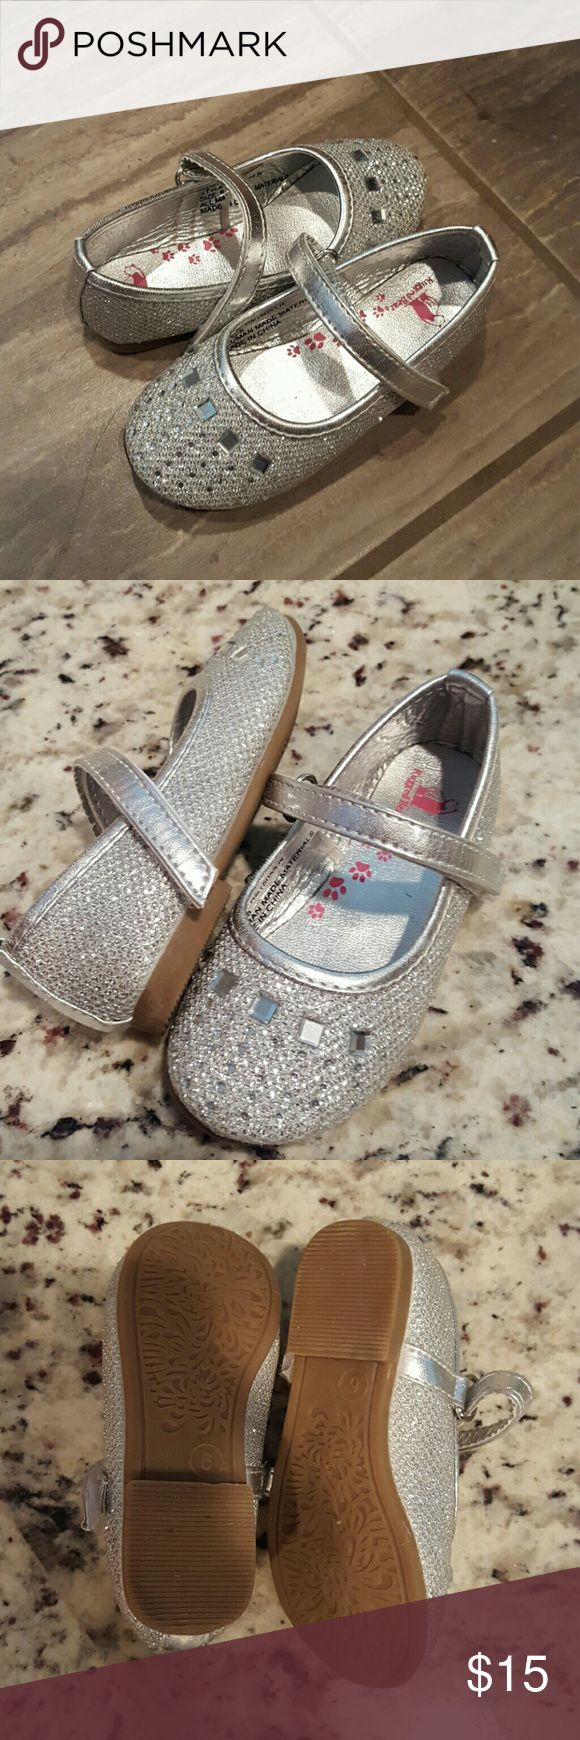 ❤Baby Girl Dress Shoes, sz. 6! Like New! Sparkly silver baby girl dress shoes with rhinestones and little jewels on the top! Shoes have a long  adjustable velcro strap! Precious w/any dress...check out the rest of our closet to bundle and have only one shipping! 😄 Rugged Bear Shoes Dress Shoes